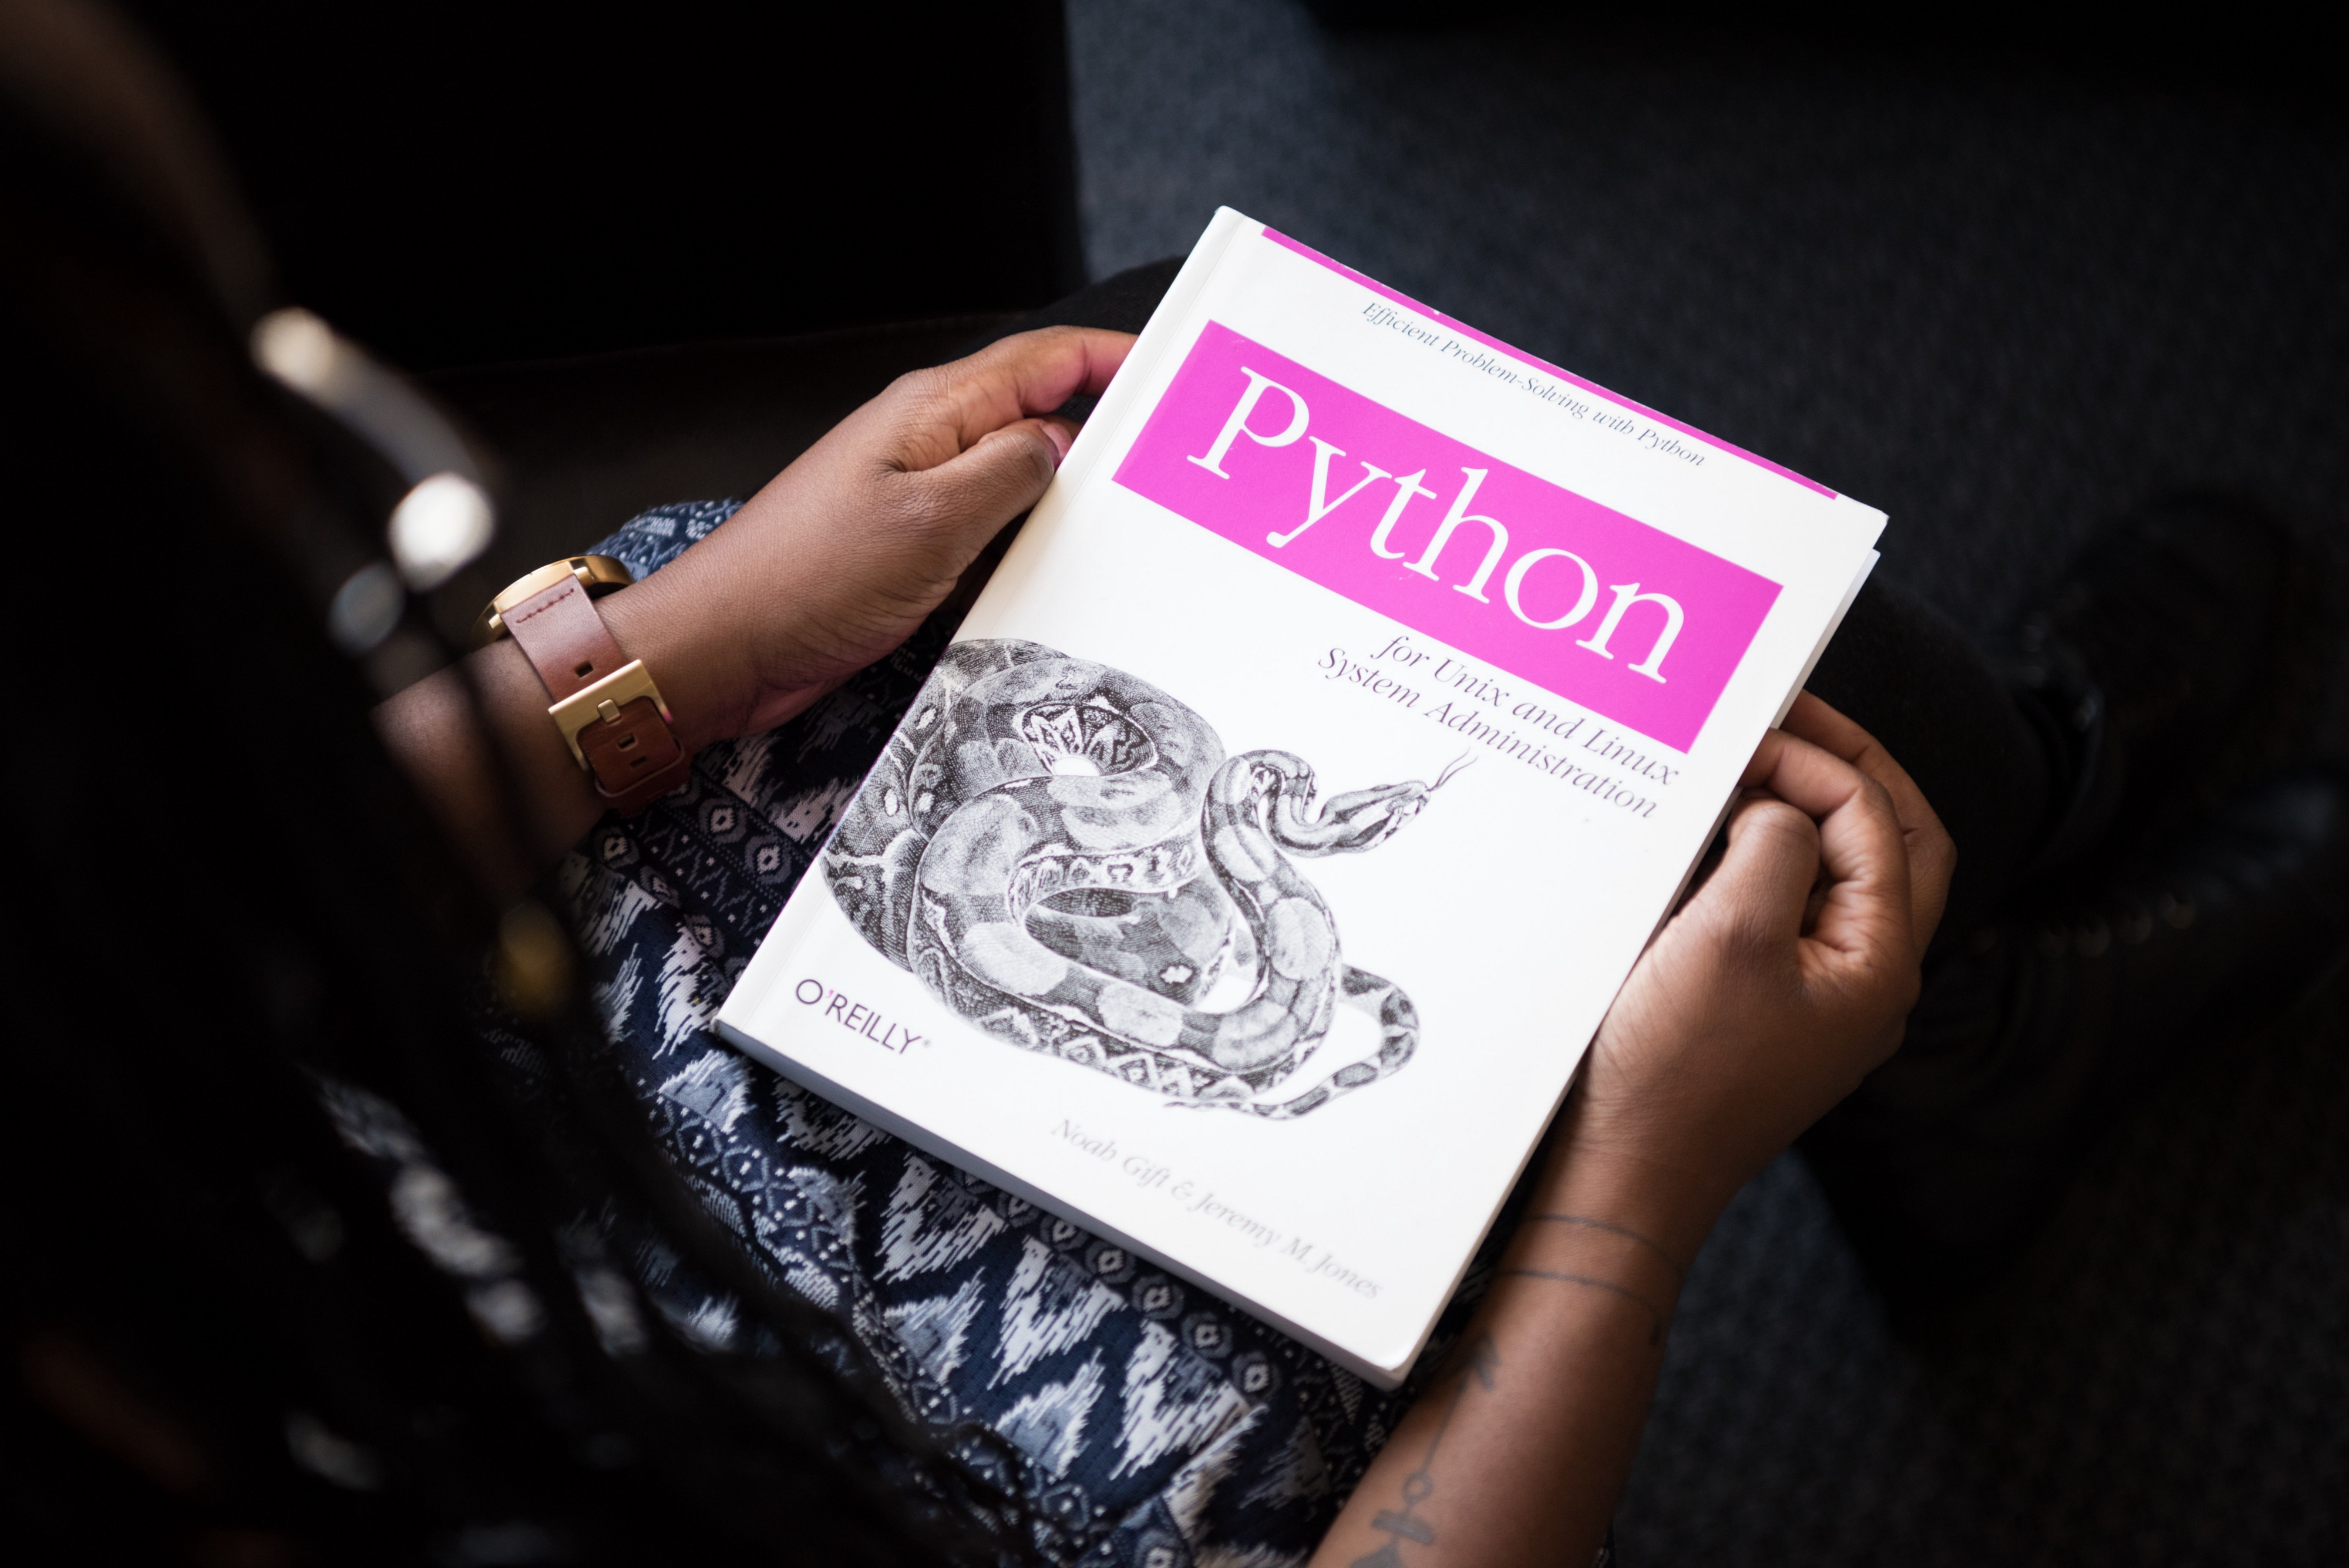 Learn Python for free online. Free Python courses and resources.